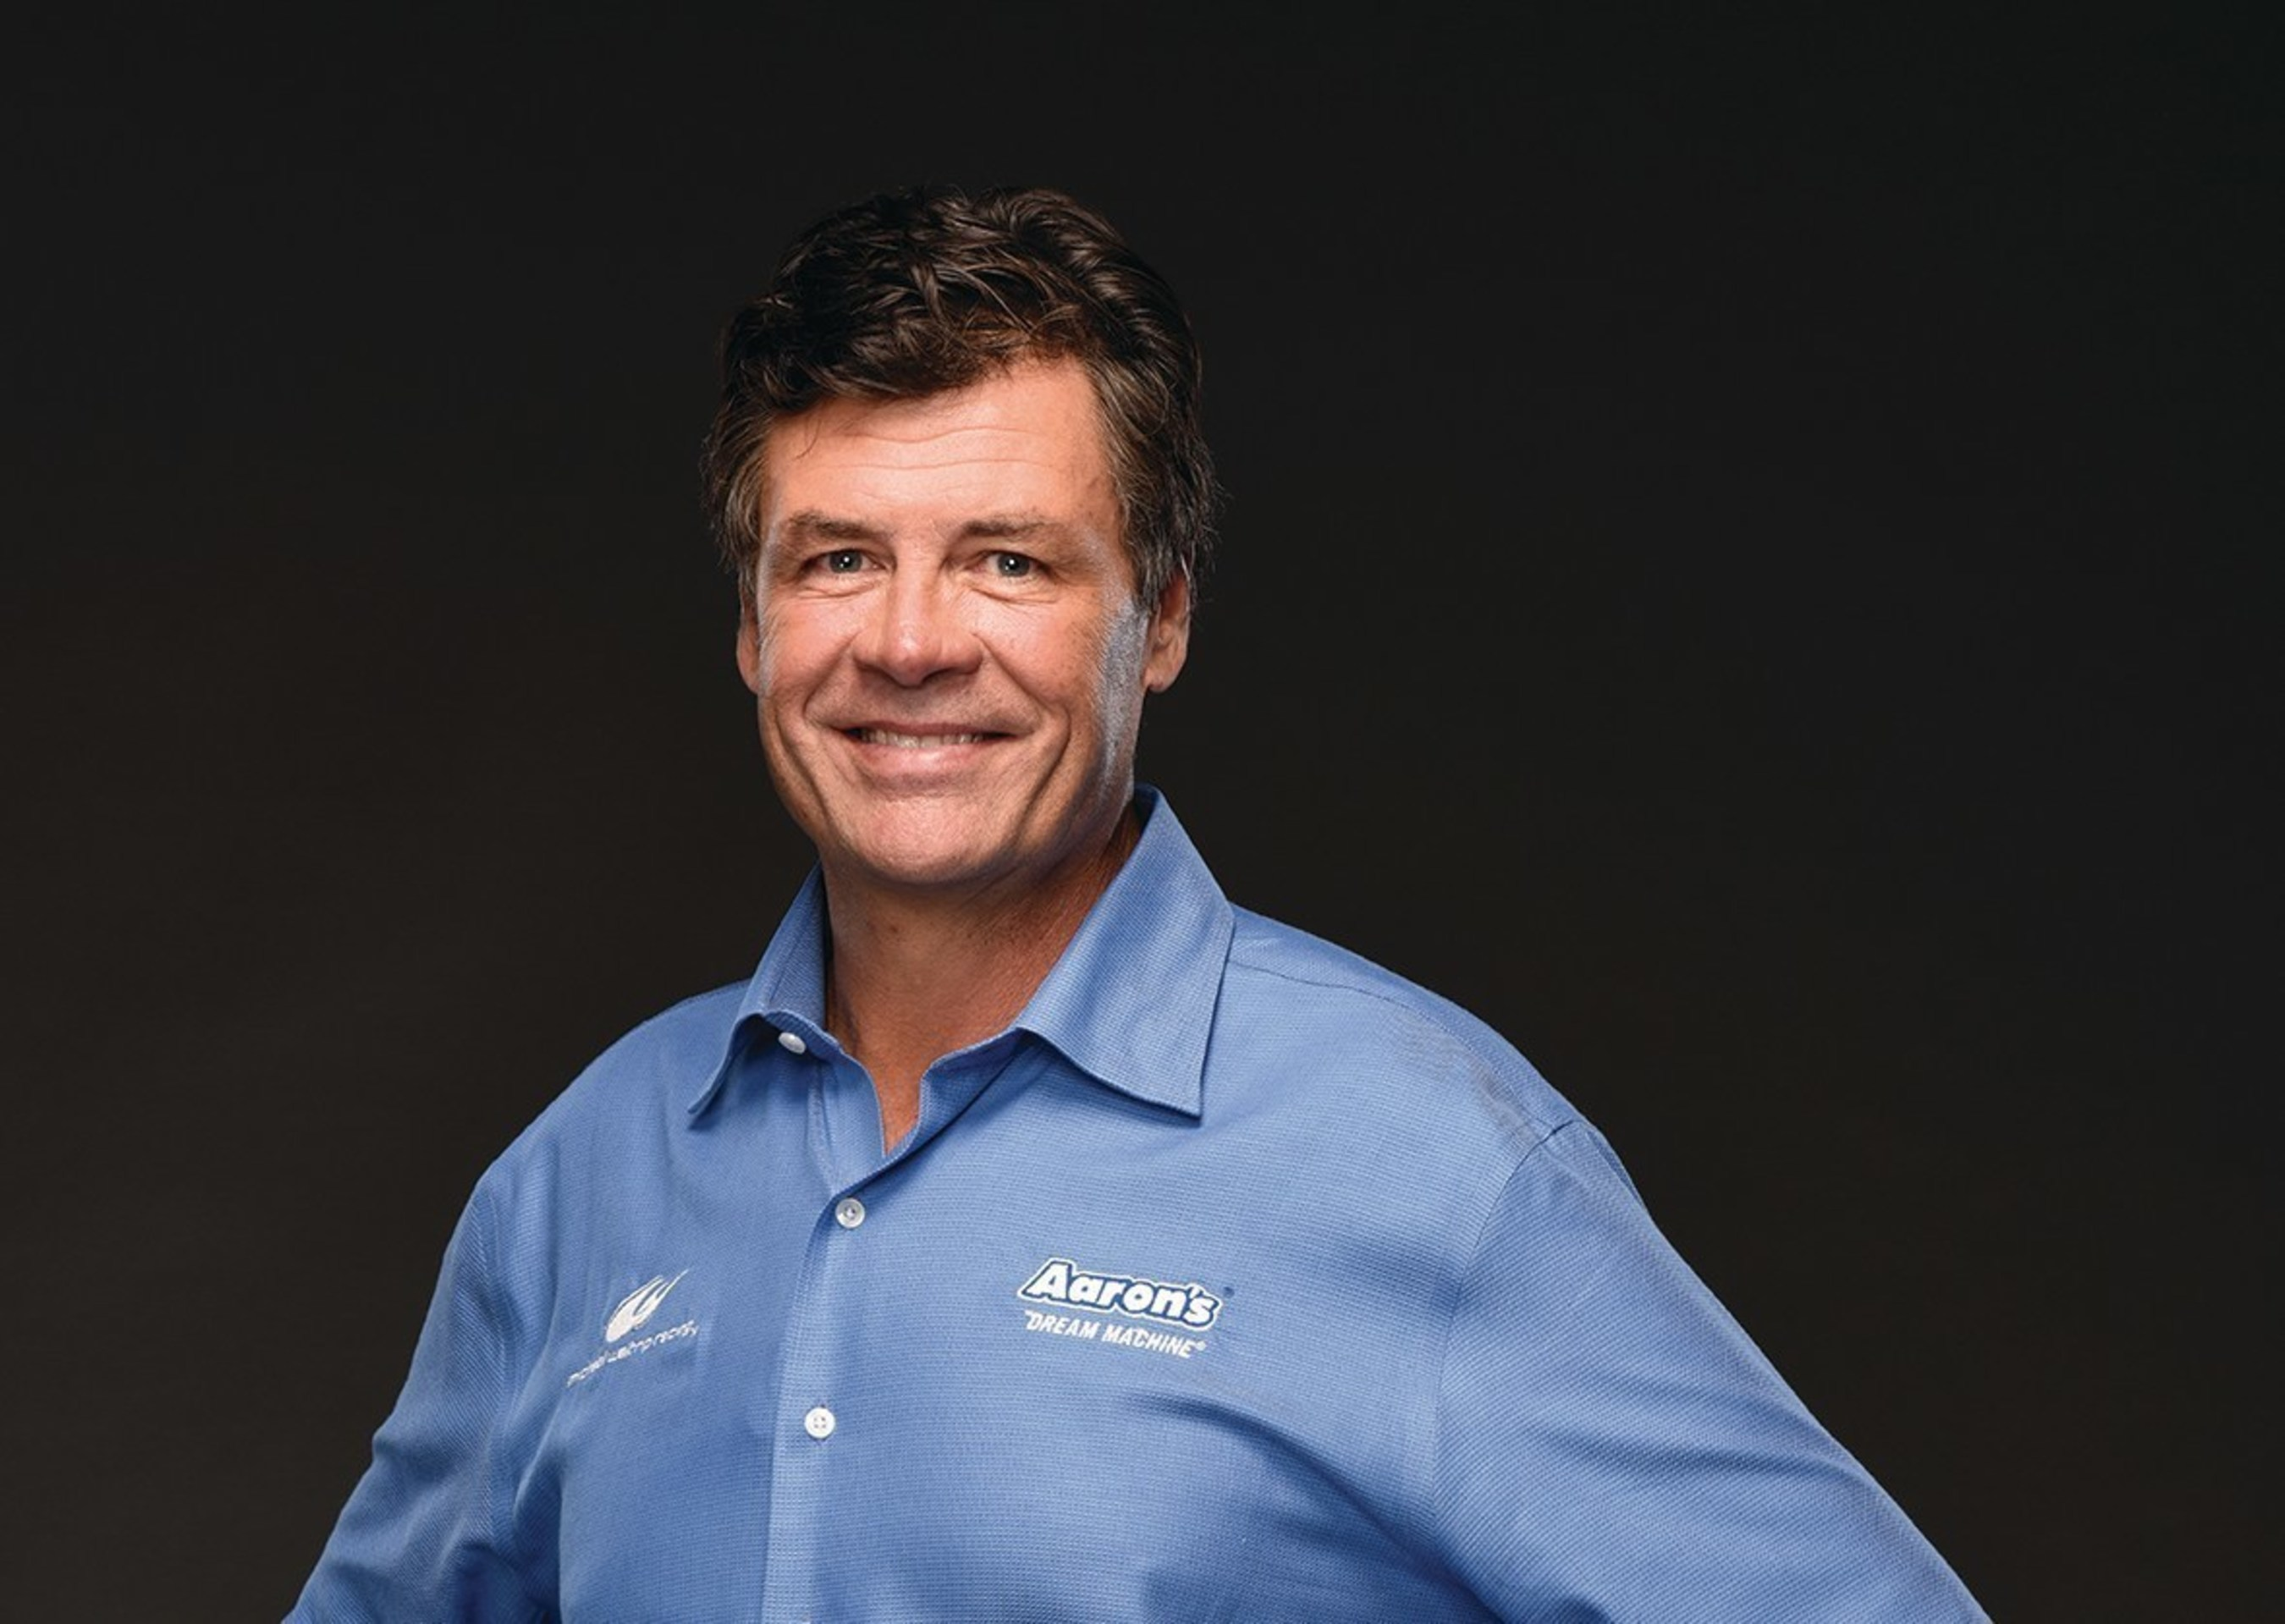 Aaron's Waltrip Family Vacation Sweepstakes starts May 2 with an exciting opportunity for a family of four to win a trip with racing legend Michael Waltrip to Miami for the last NASCAR race of the year. Waltrip has been featured in several Aaron's commercials this year and will drive in this Sunday's Talladega race with Aaron's logo visible on the car as an associate sponsor. To enter to win, visit www.Aarons.com/WaltripVacation.